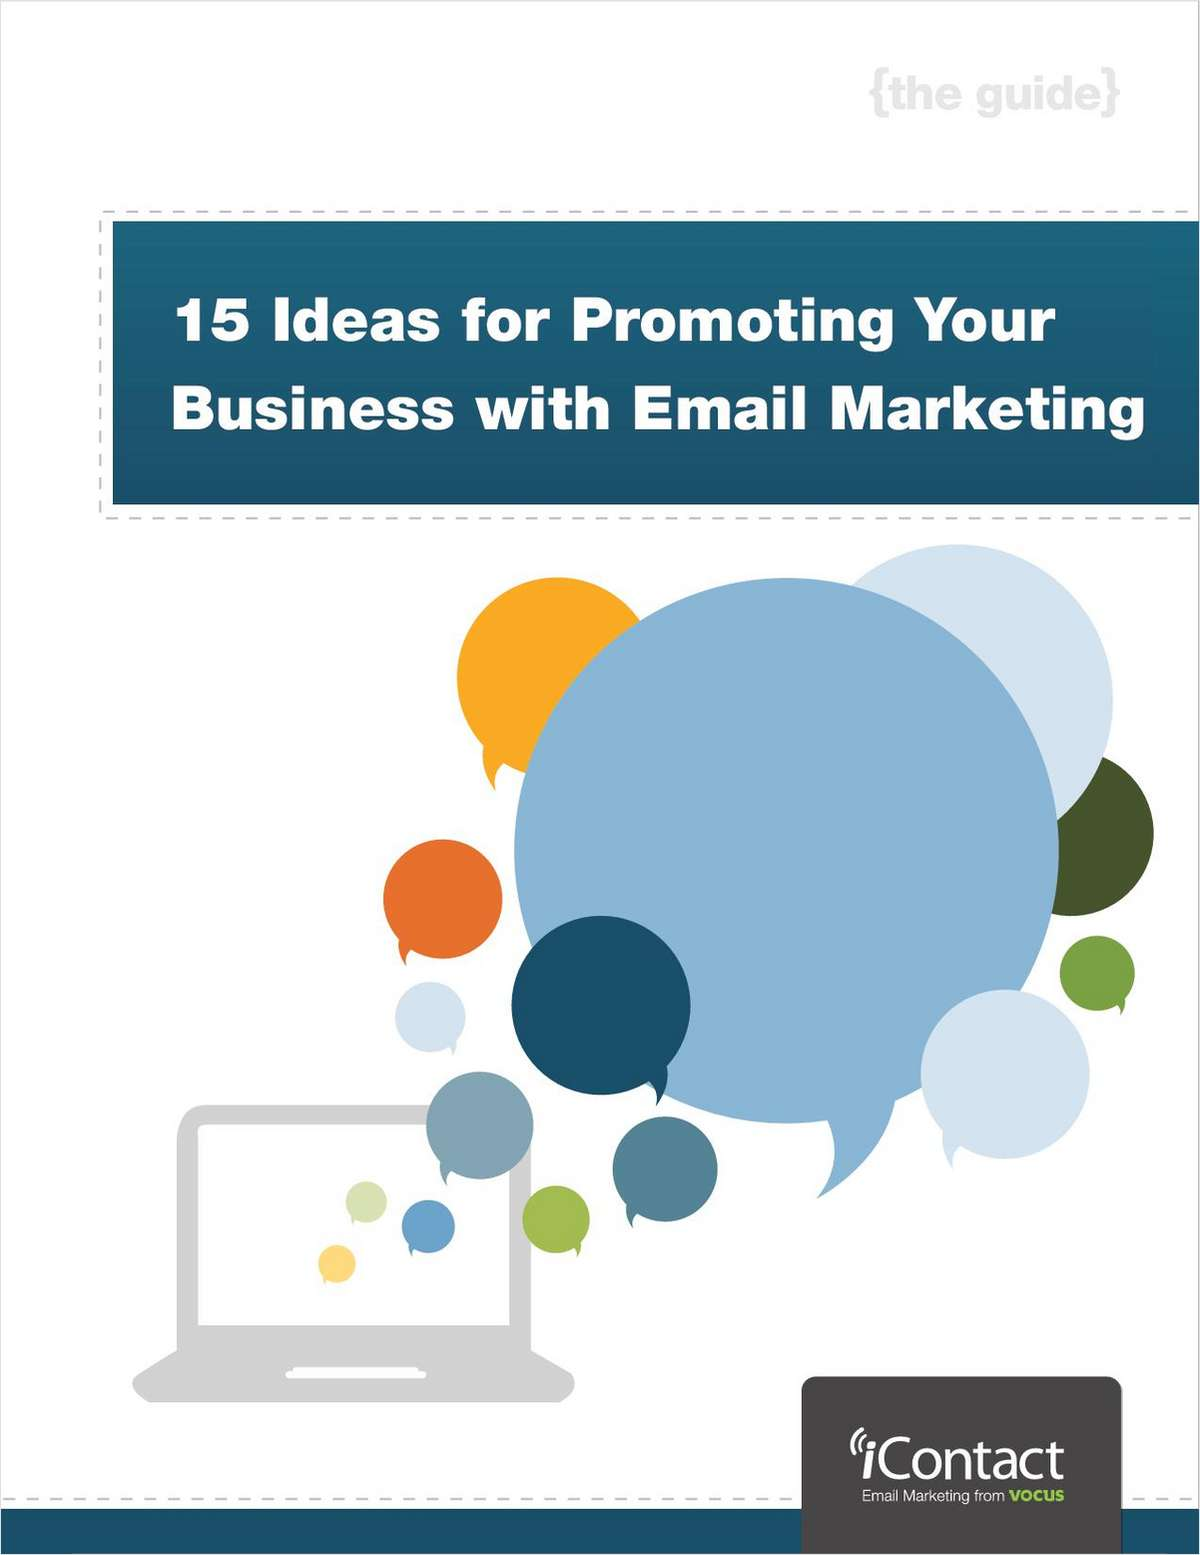 15 Ideas for Promoting Your Business Online